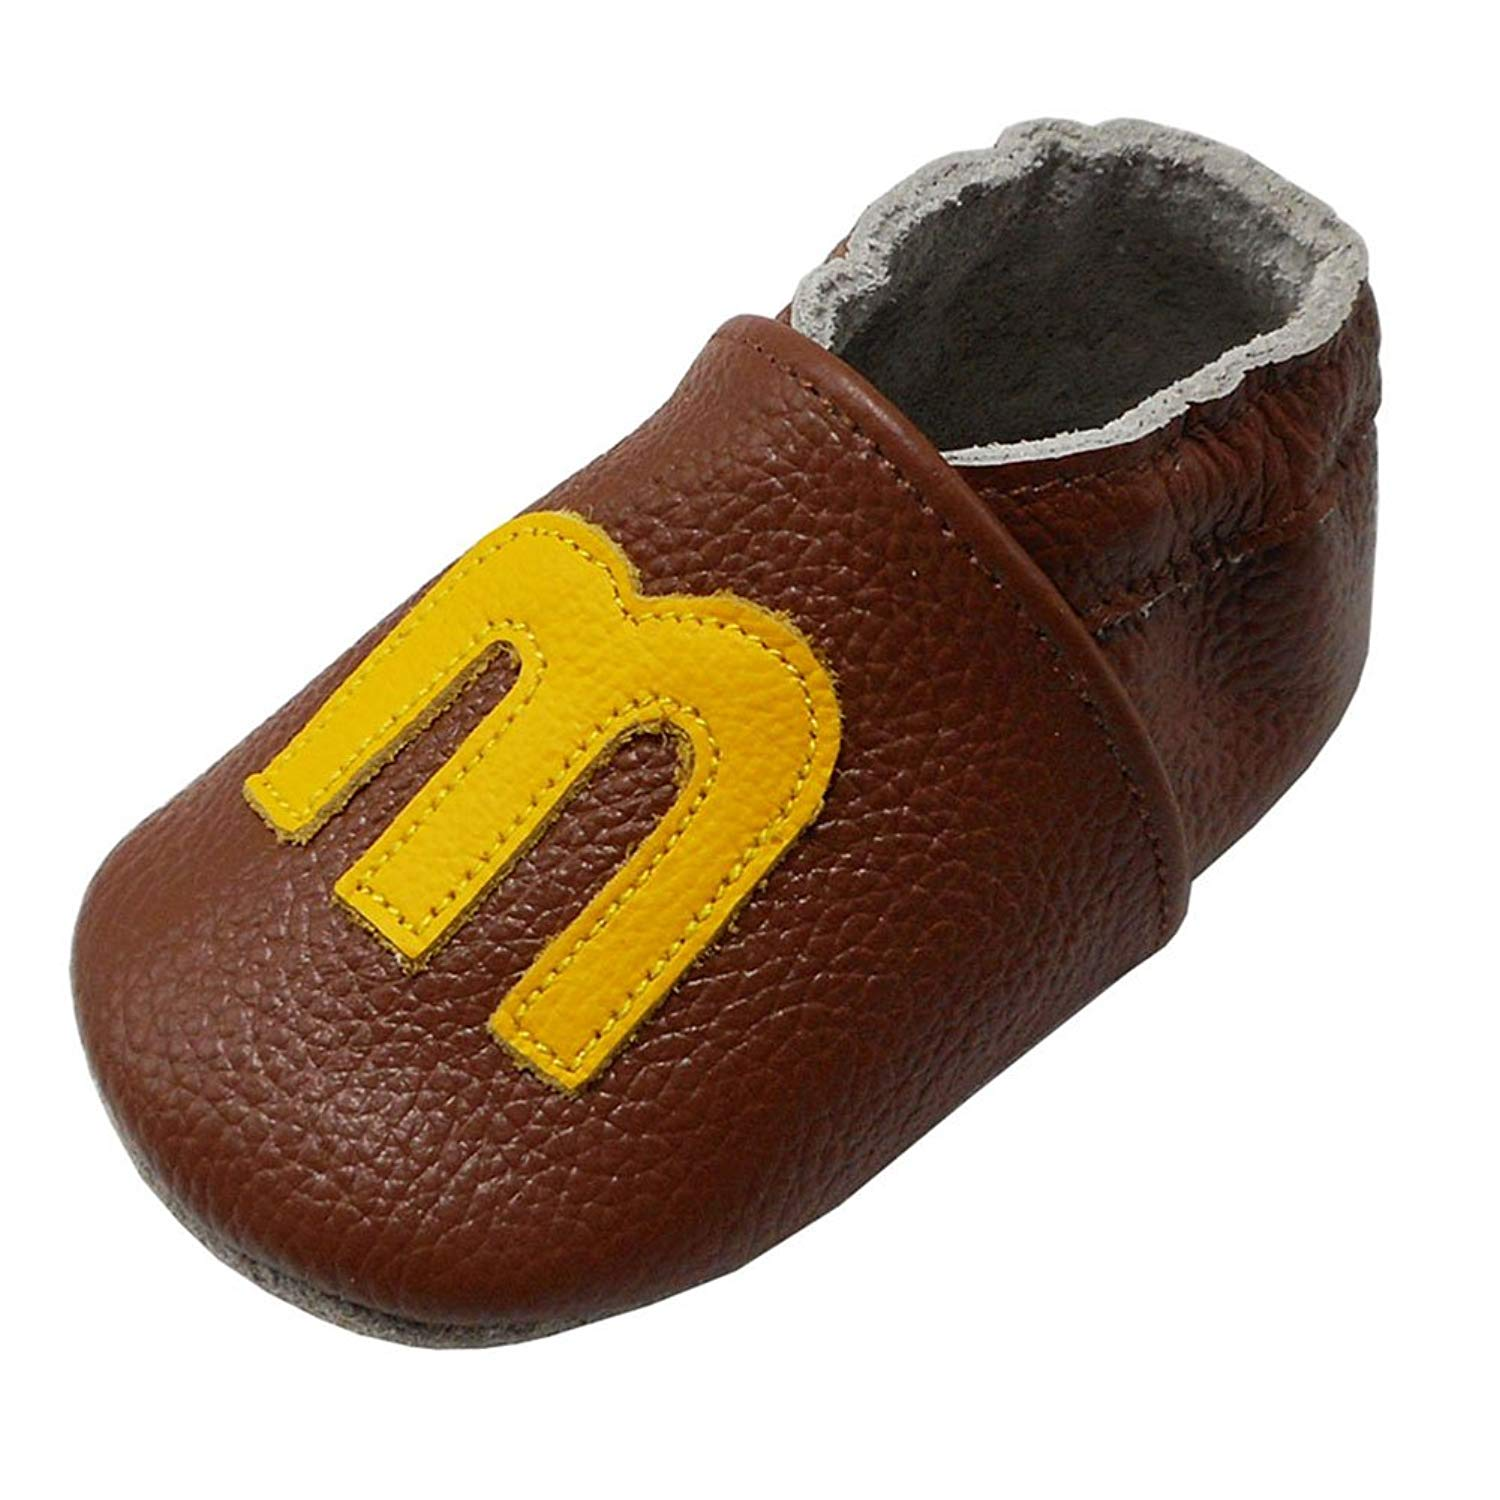 740d6f26e7c4 Get Quotations · Yalion Baby Soft Sole Leather Shoes Infant Boy Girl  Toddler Moccasin Prewalker Crib Shoes Letter-